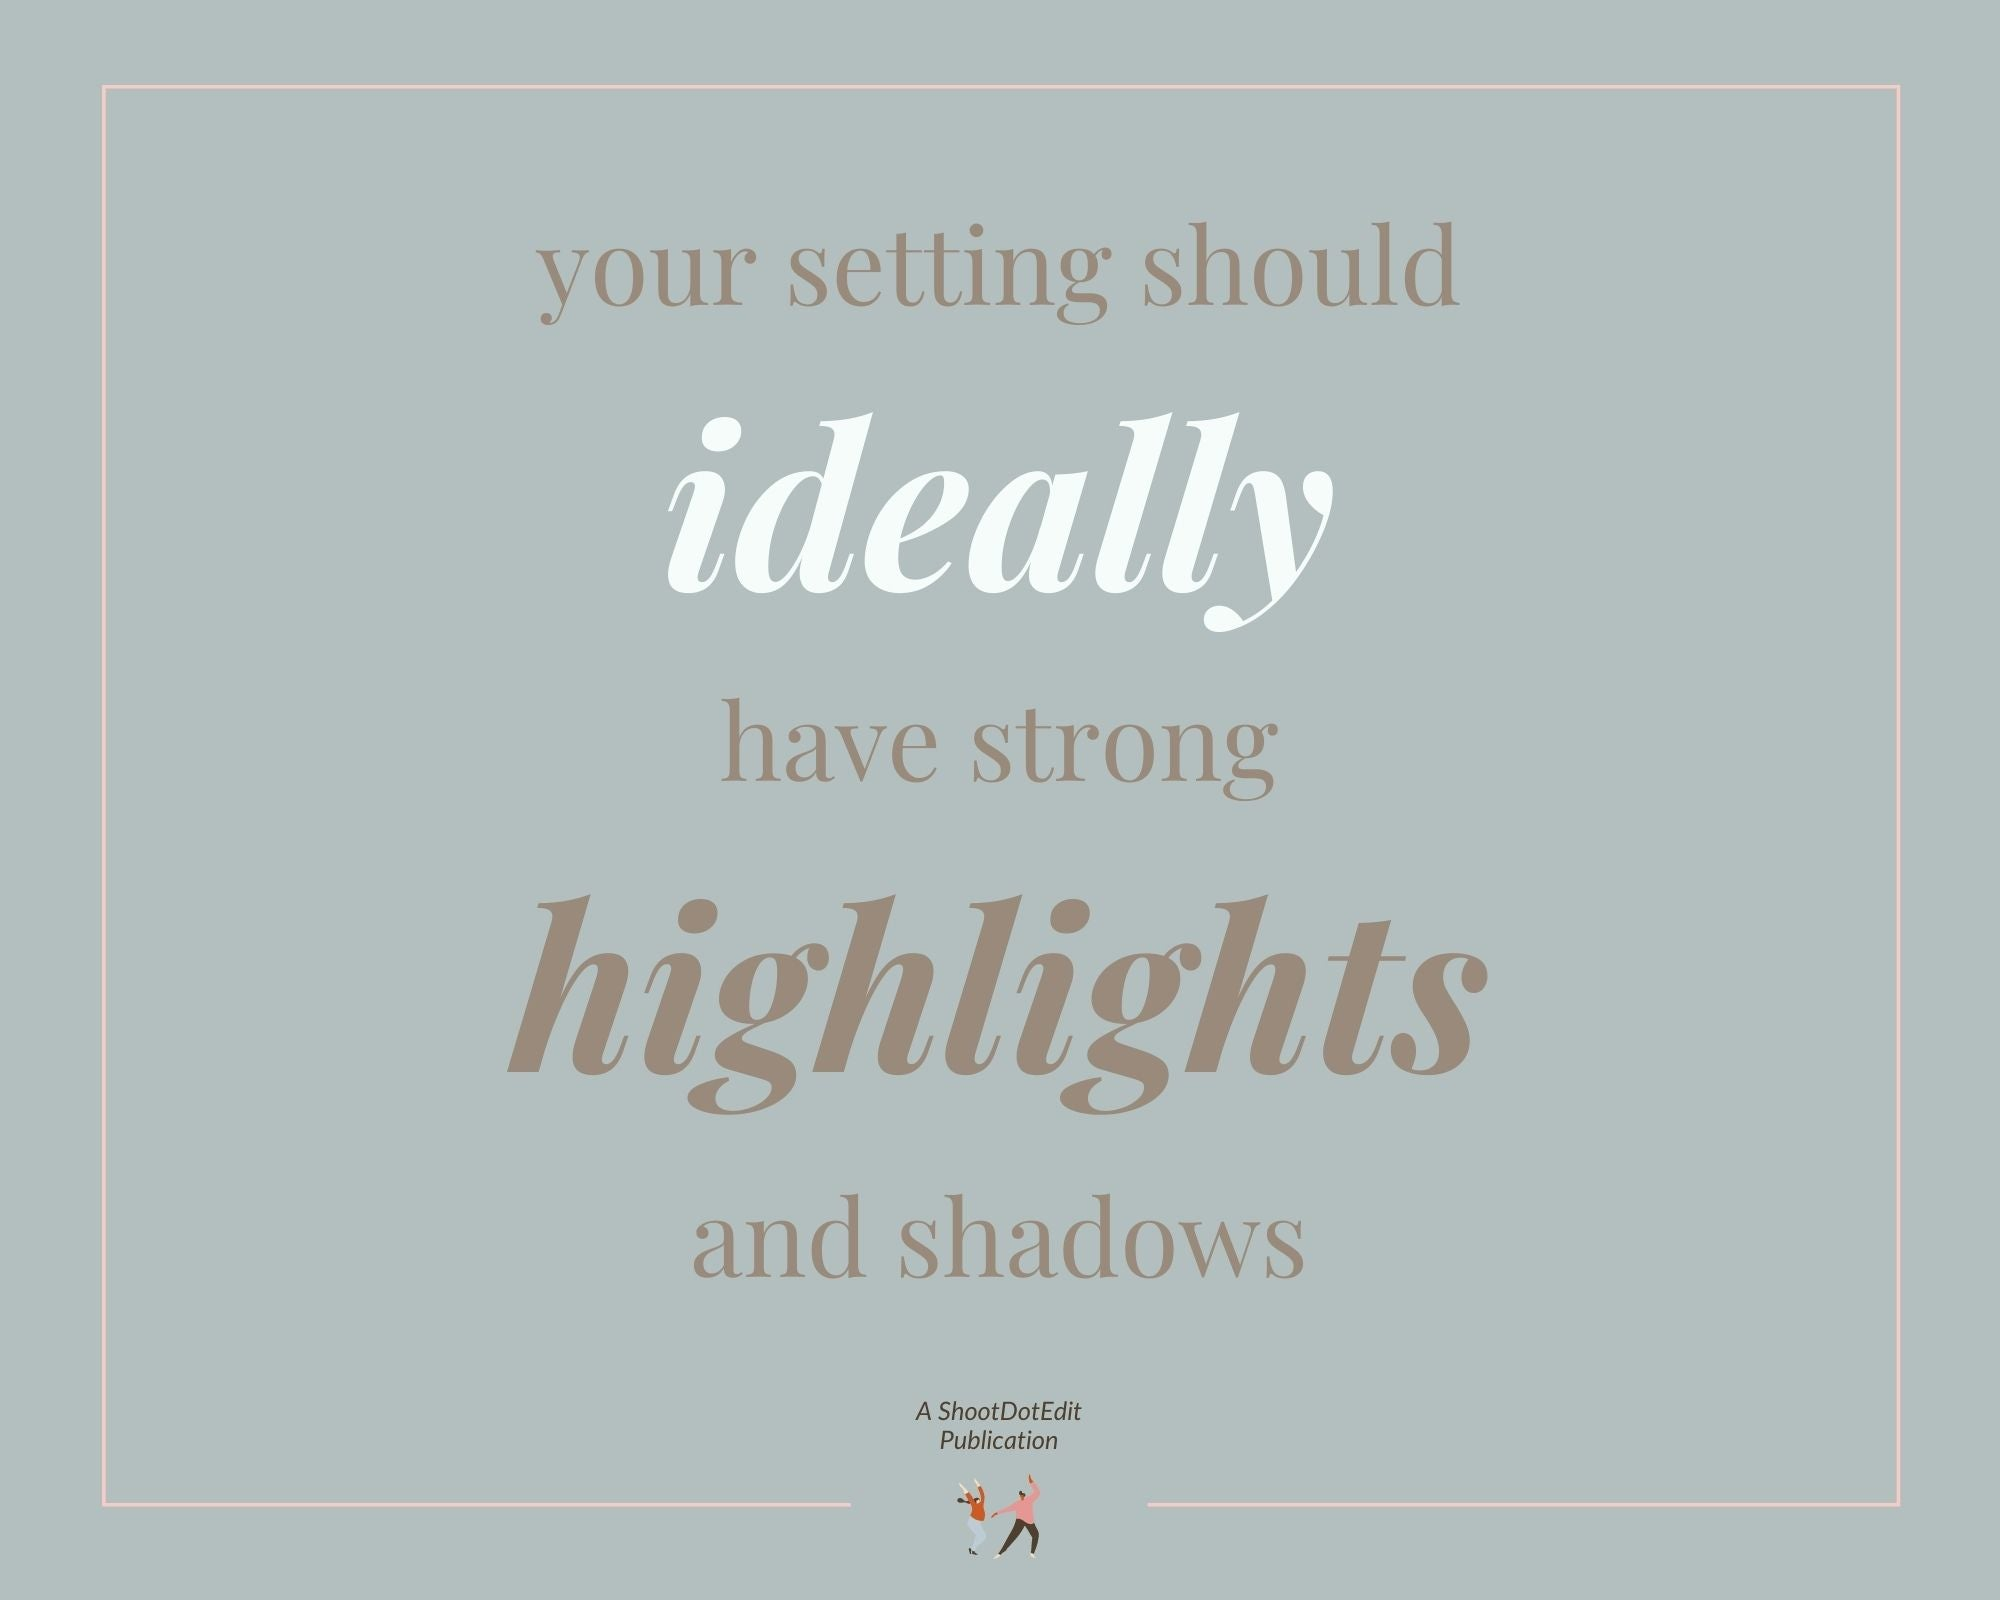 Infographic stating your setting should ideally have strong highlights and shadows